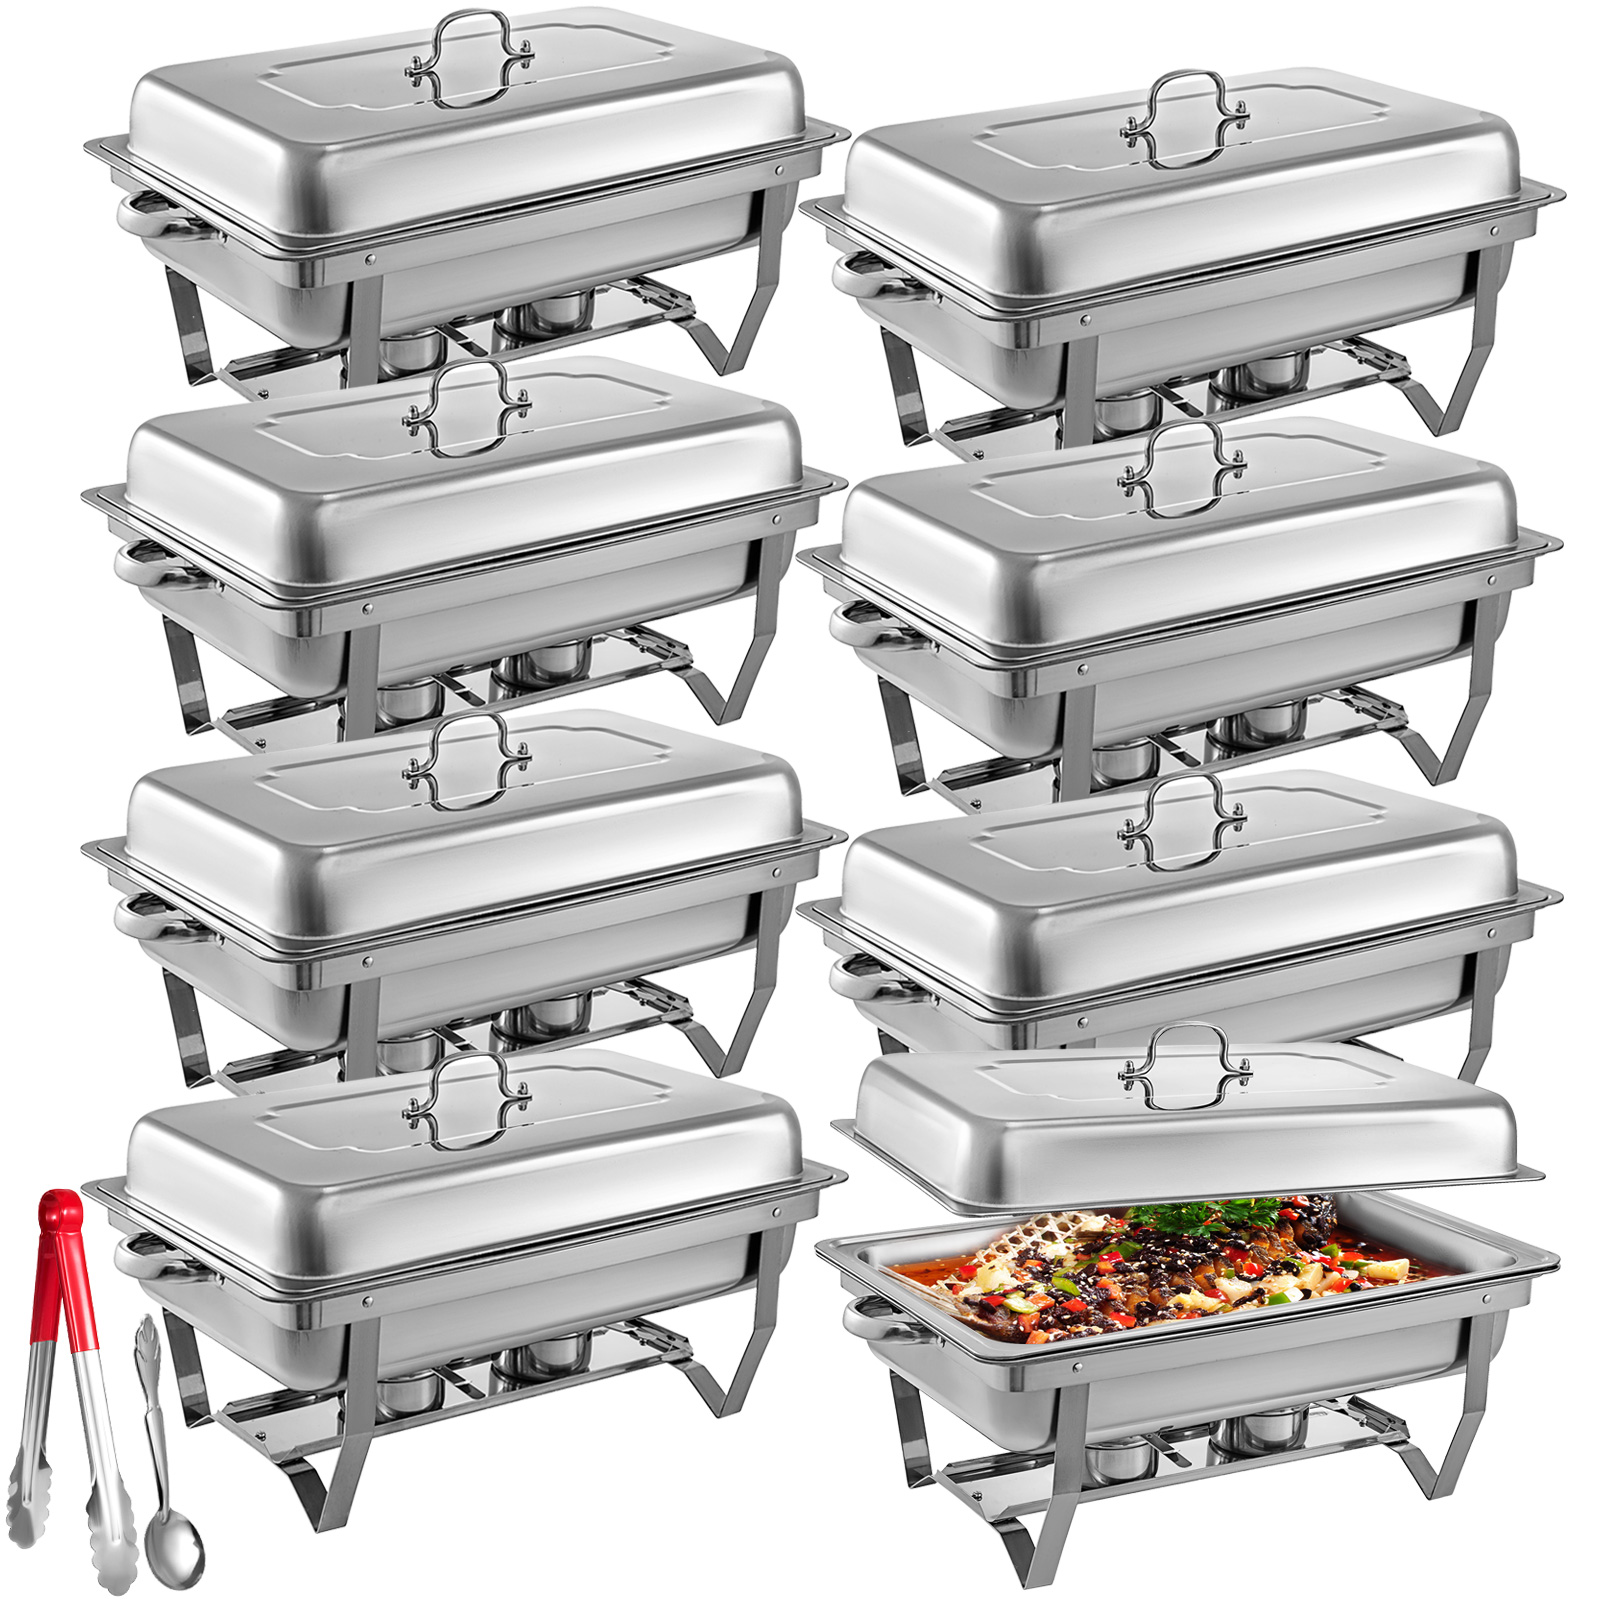 thumbnail 49 - Multi-Stainless-Steel-Chafing-Dish-Bain-Marie-Bow-Catering-Dish-Hotpot-Server